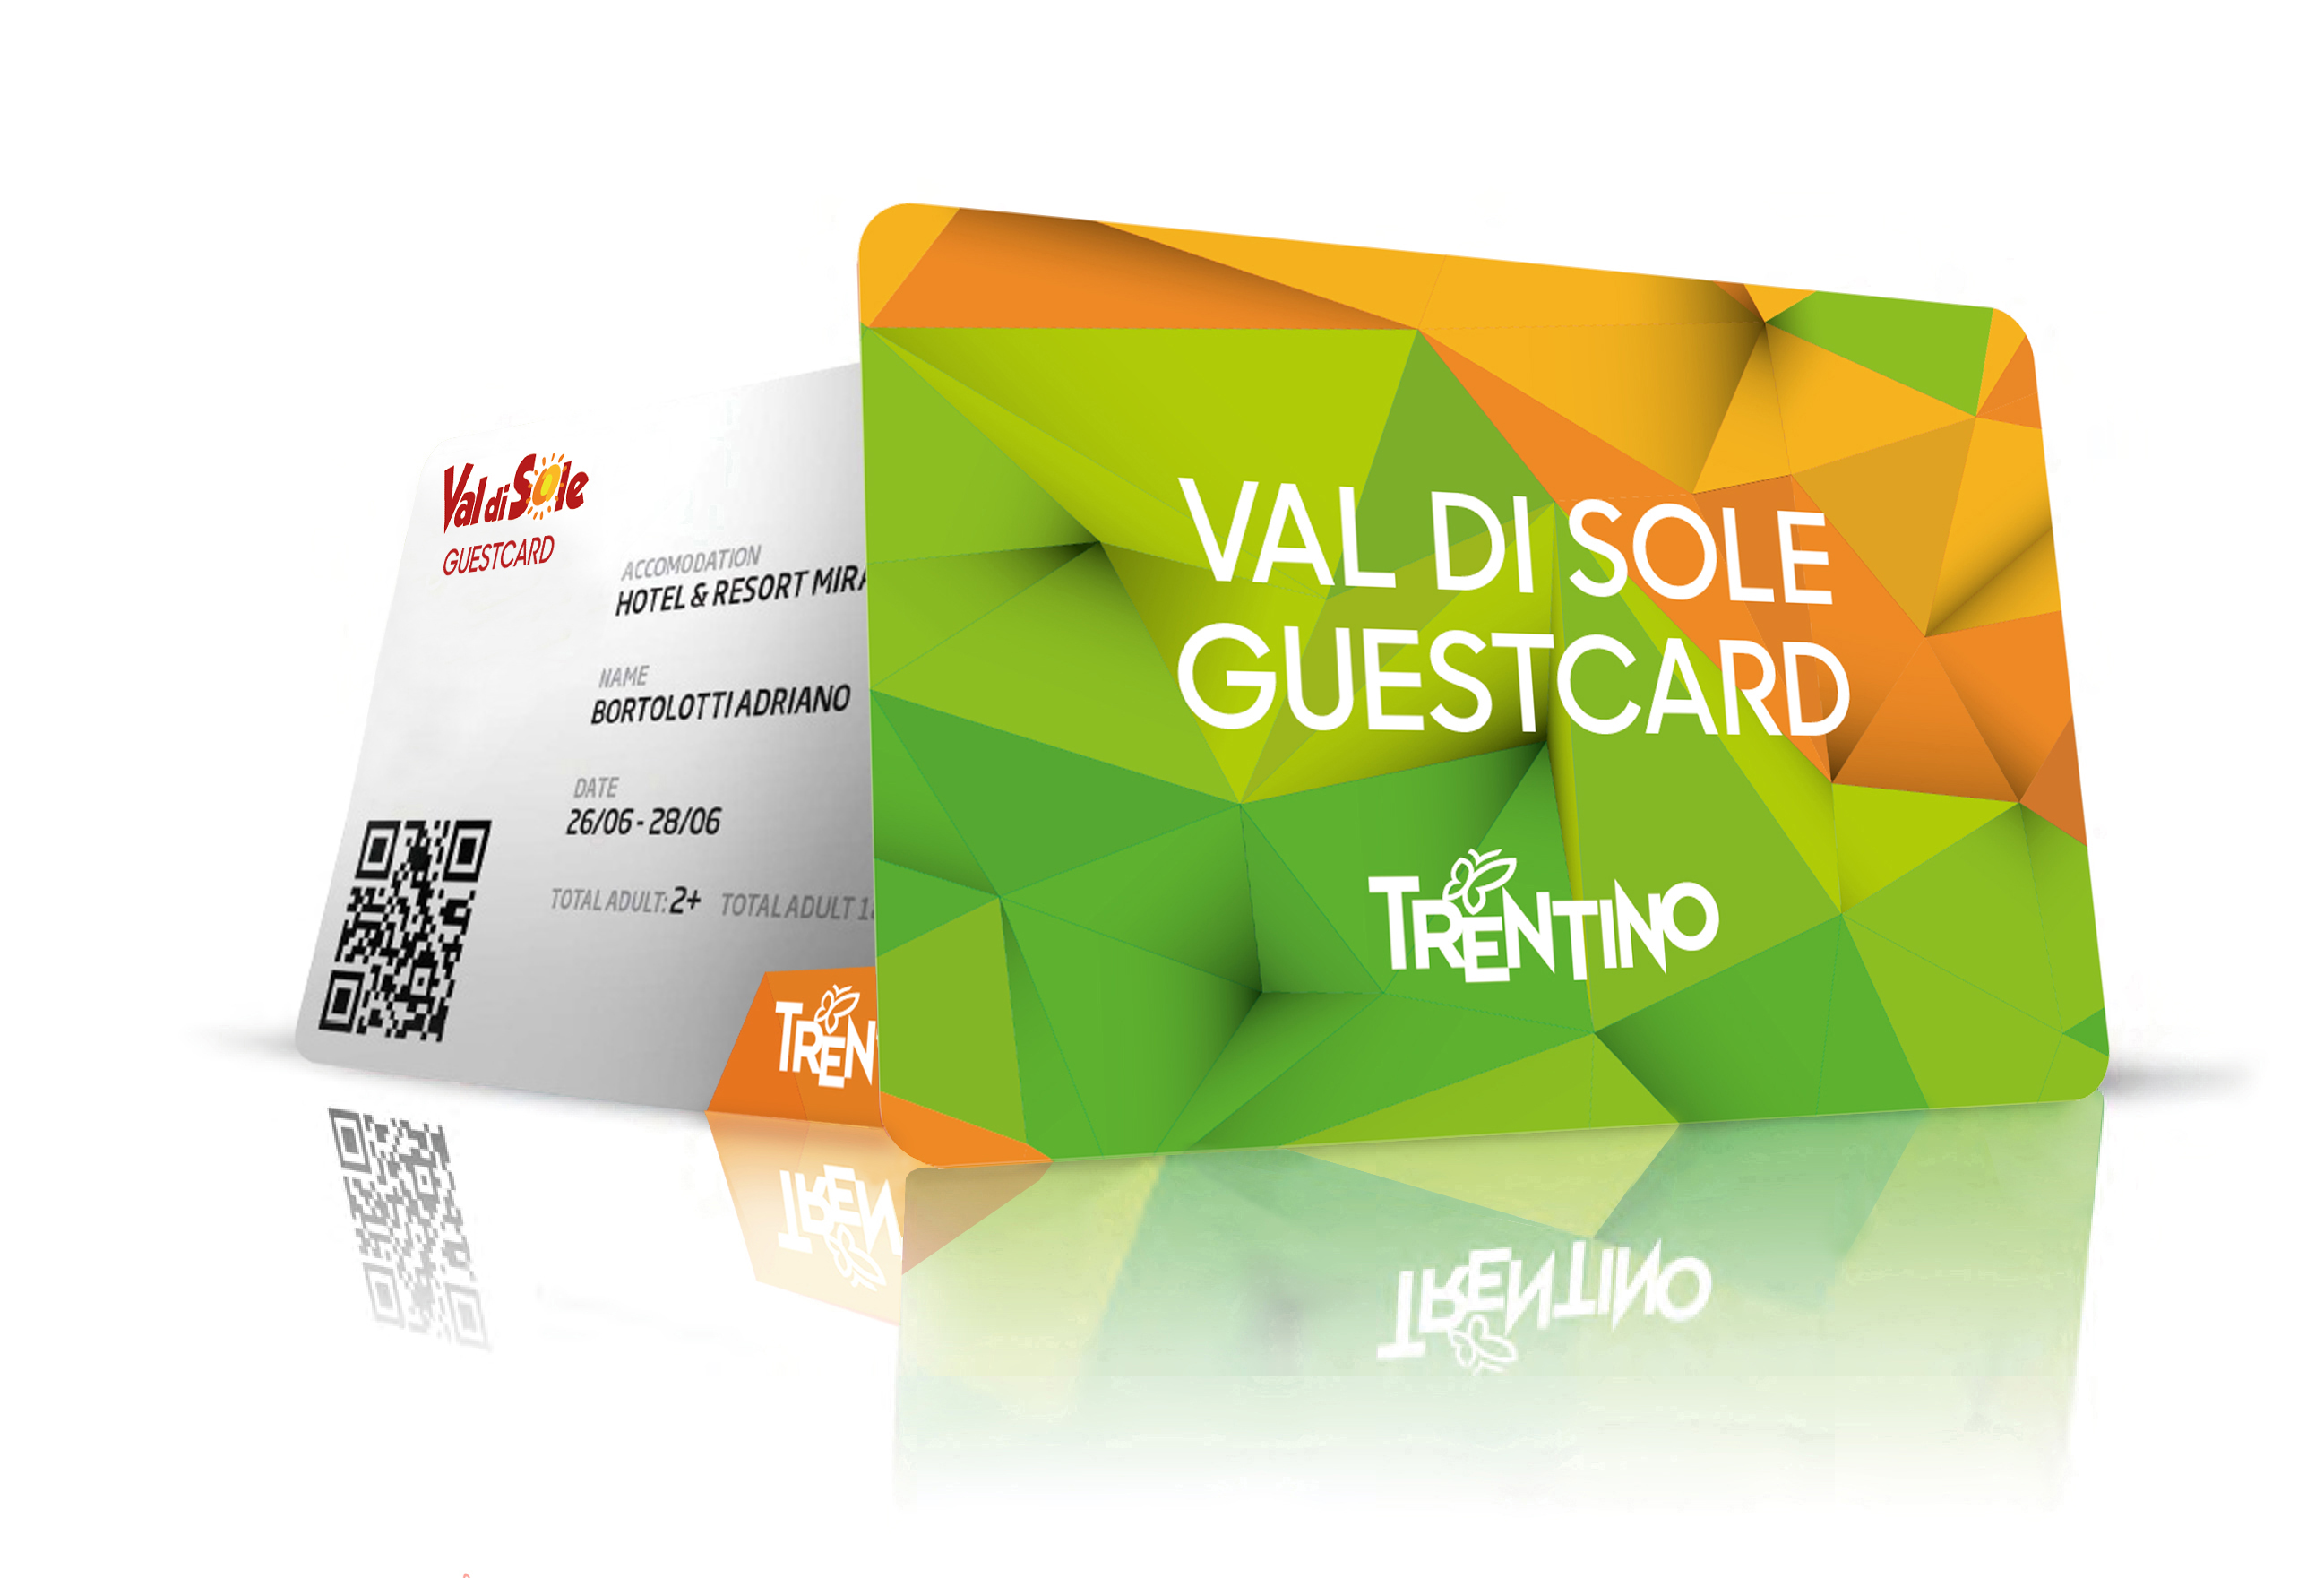 News-Last minute, VAL DI SOLE GUEST CARD 2020